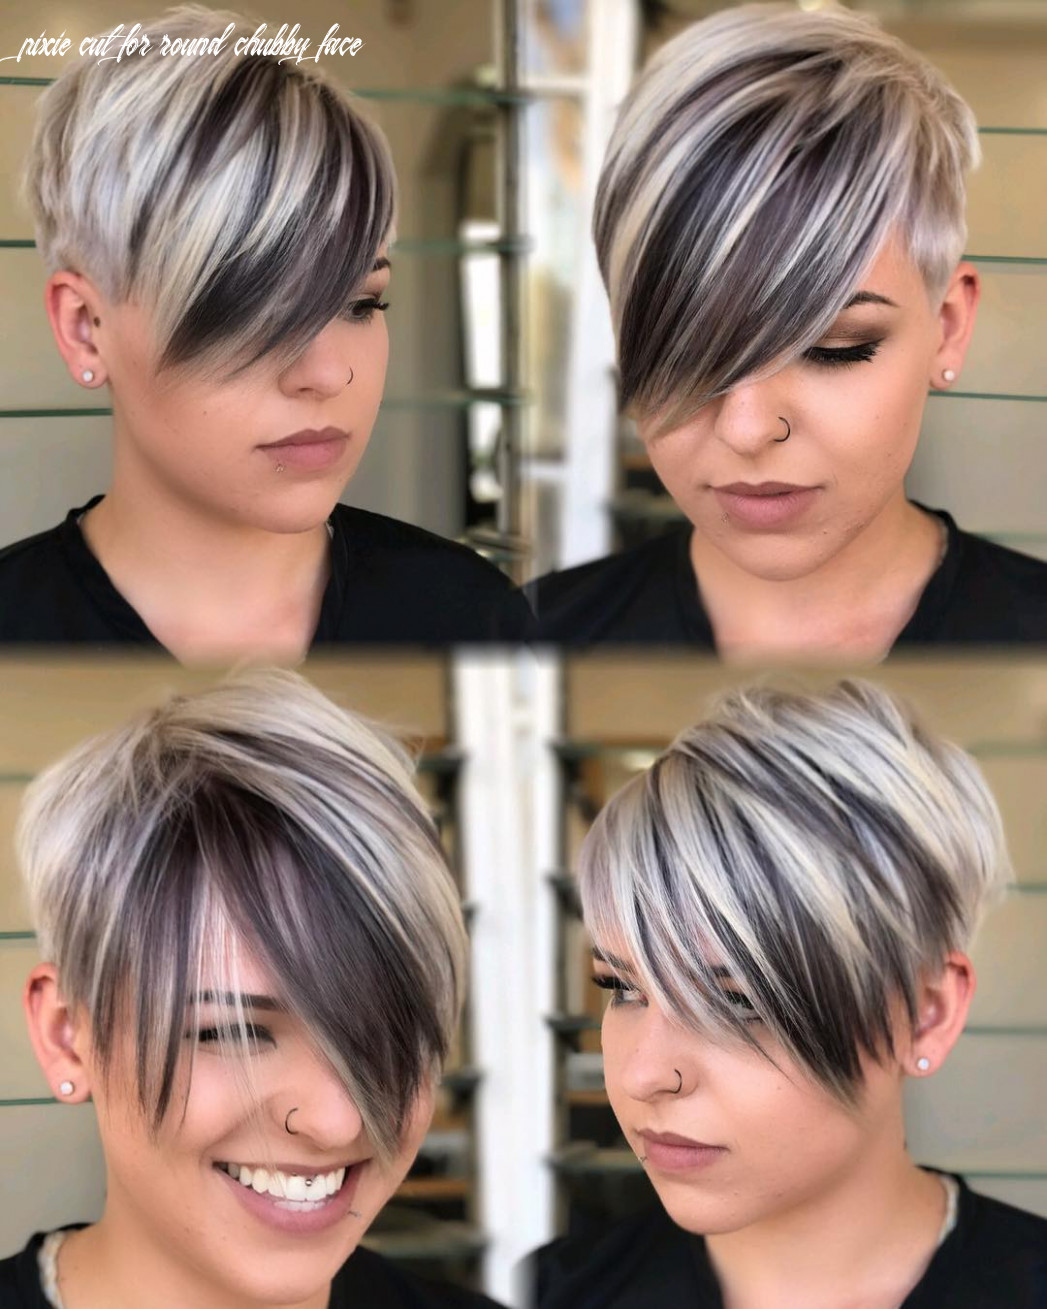 12 short hairstyles for round faces with slimming effect hadviser pixie cut for round chubby face